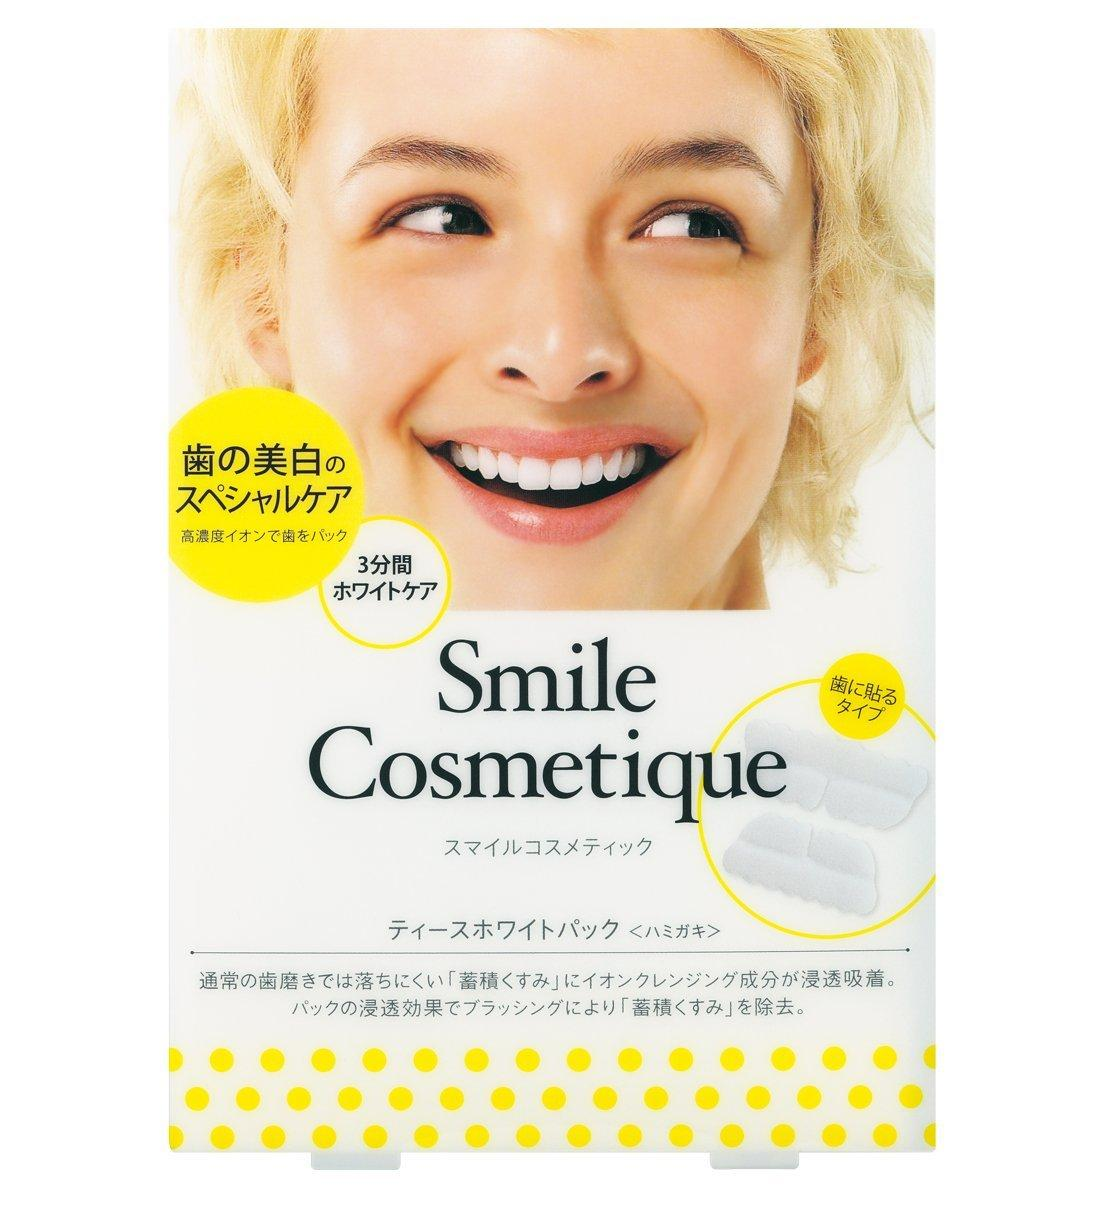 10% Off + Delivery from Japan Smile Cosmetique Teeth White Pack - 6 Packs